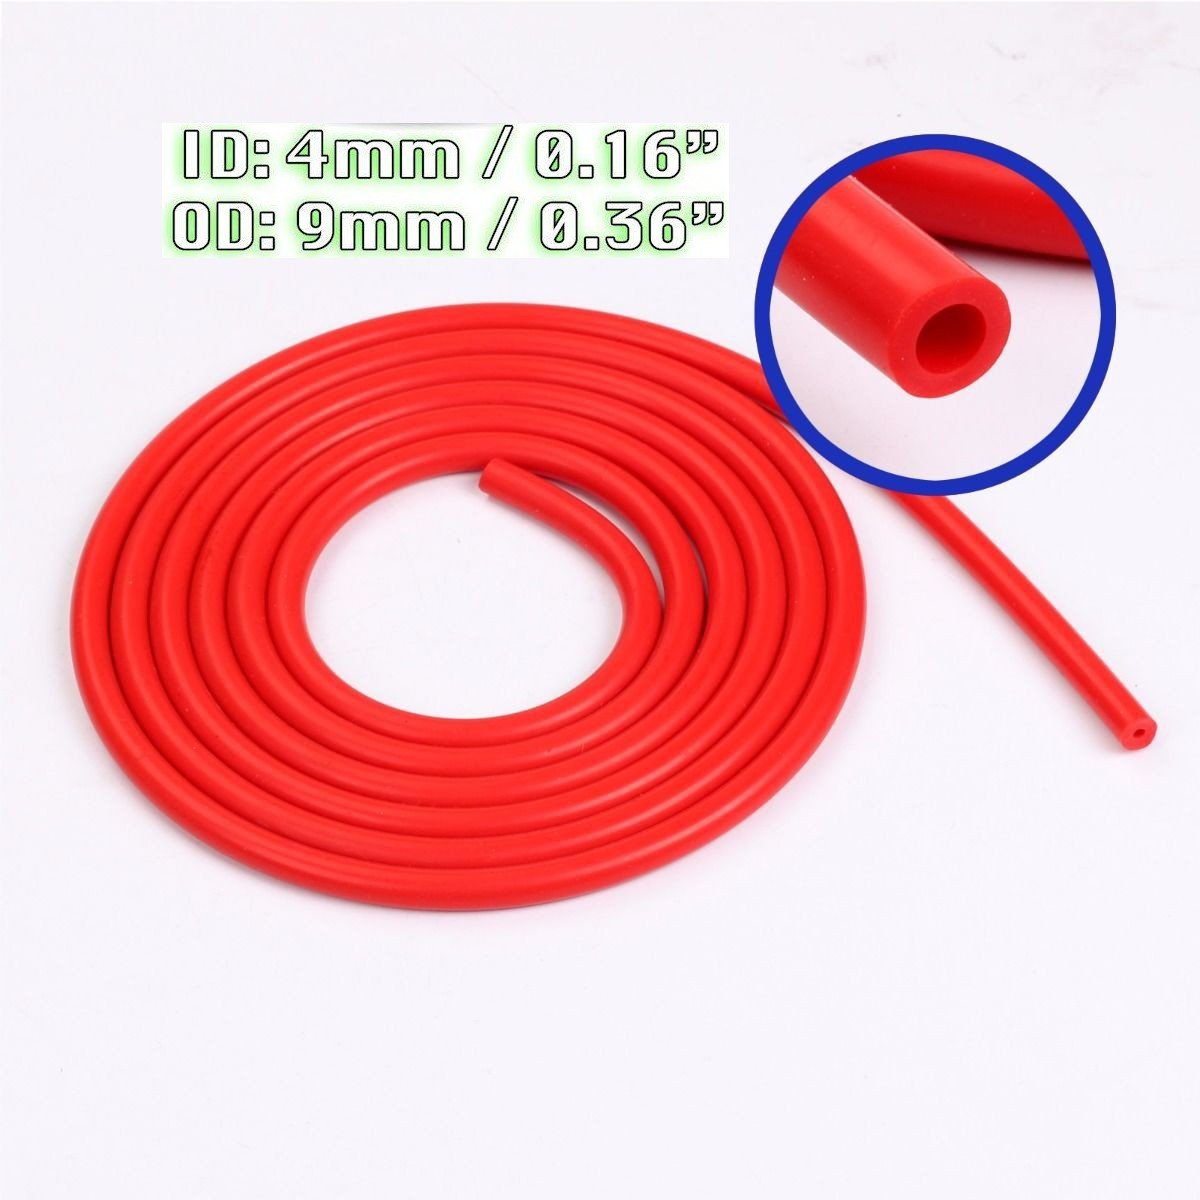 Ronben Car Engine 4mm Silicone Vacuum Tube Hose Silicon Tubing 16.4ft 5 Meters Kit (Red)